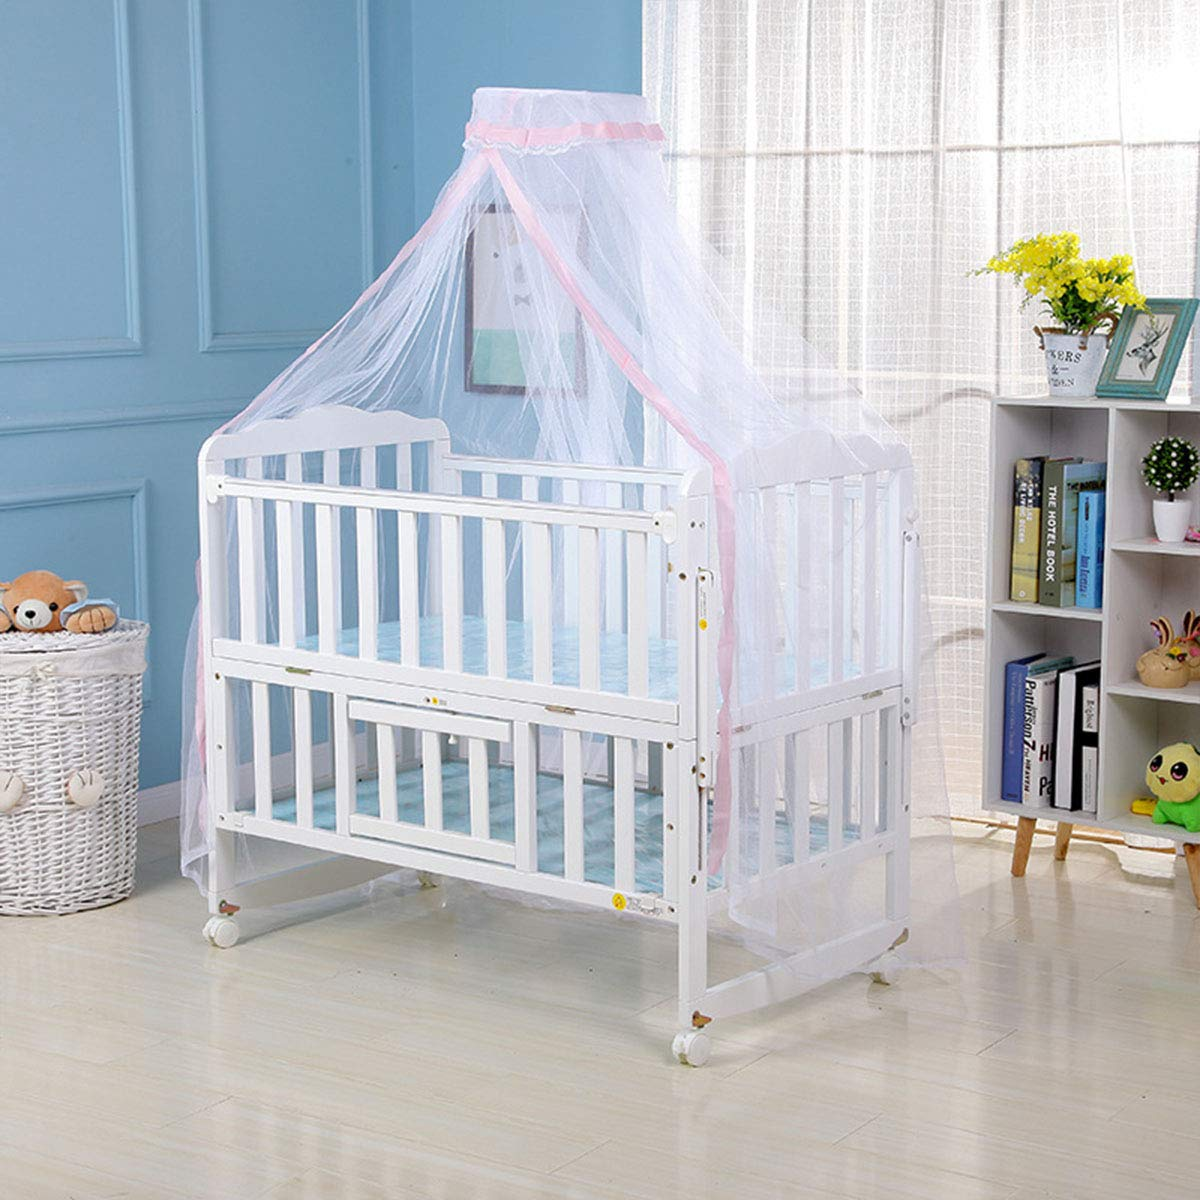 DaMohony Baby Mosquito Net, Crib Dome Net Child Newborn Foldable Mosquito Mesh Net Bed Canopy Portable Travel Camping Curtain for Home Outdoor